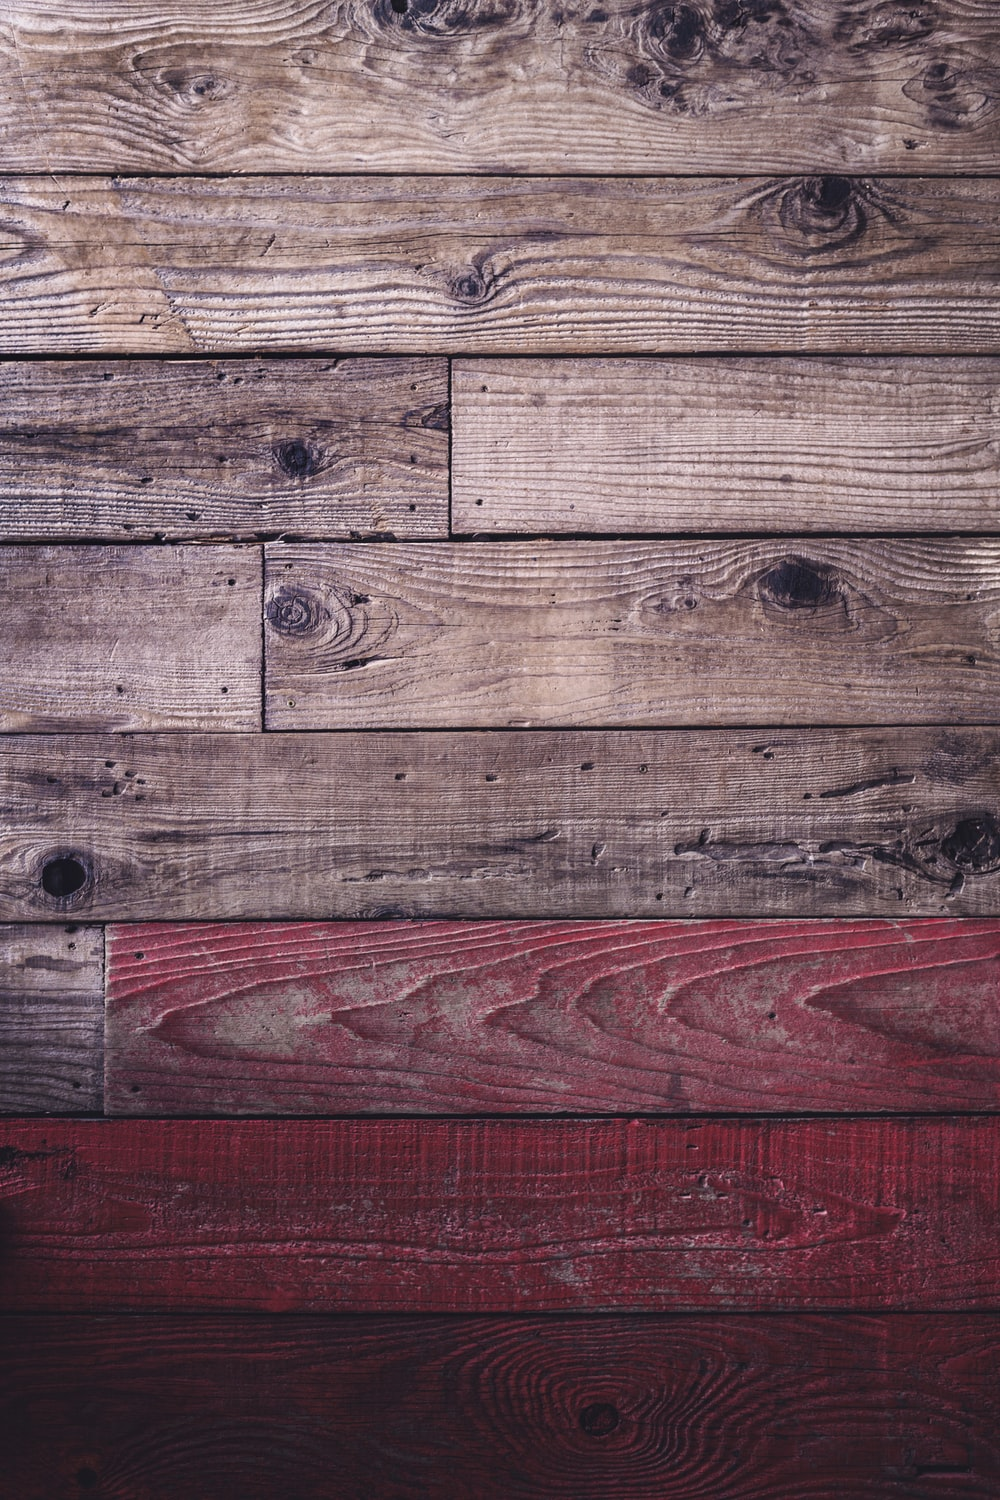 brown wooden plank with red paint